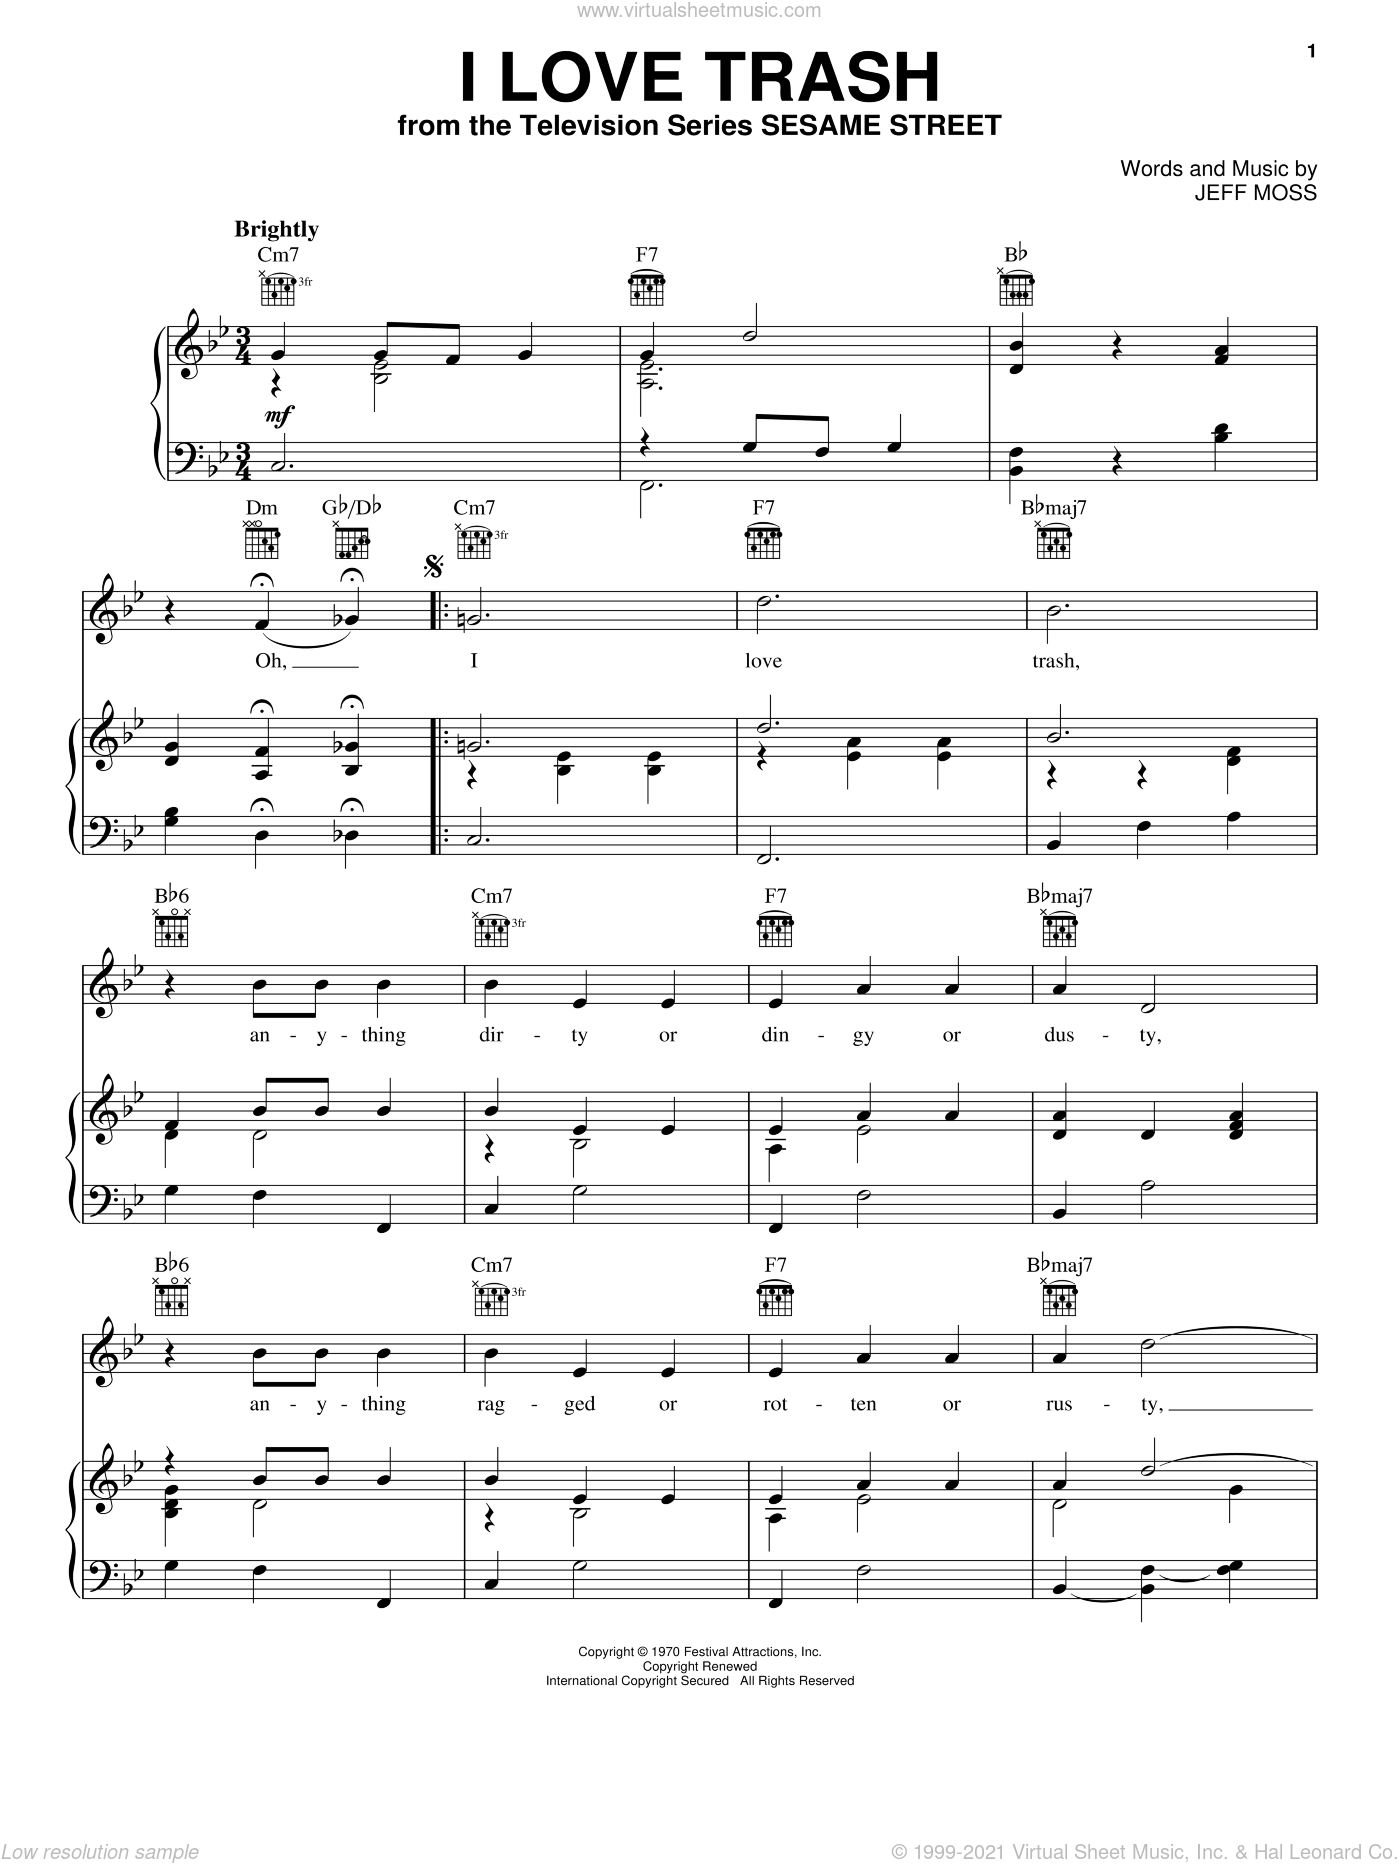 I Love Trash sheet music for voice, piano or guitar by Jeff Moss, intermediate skill level